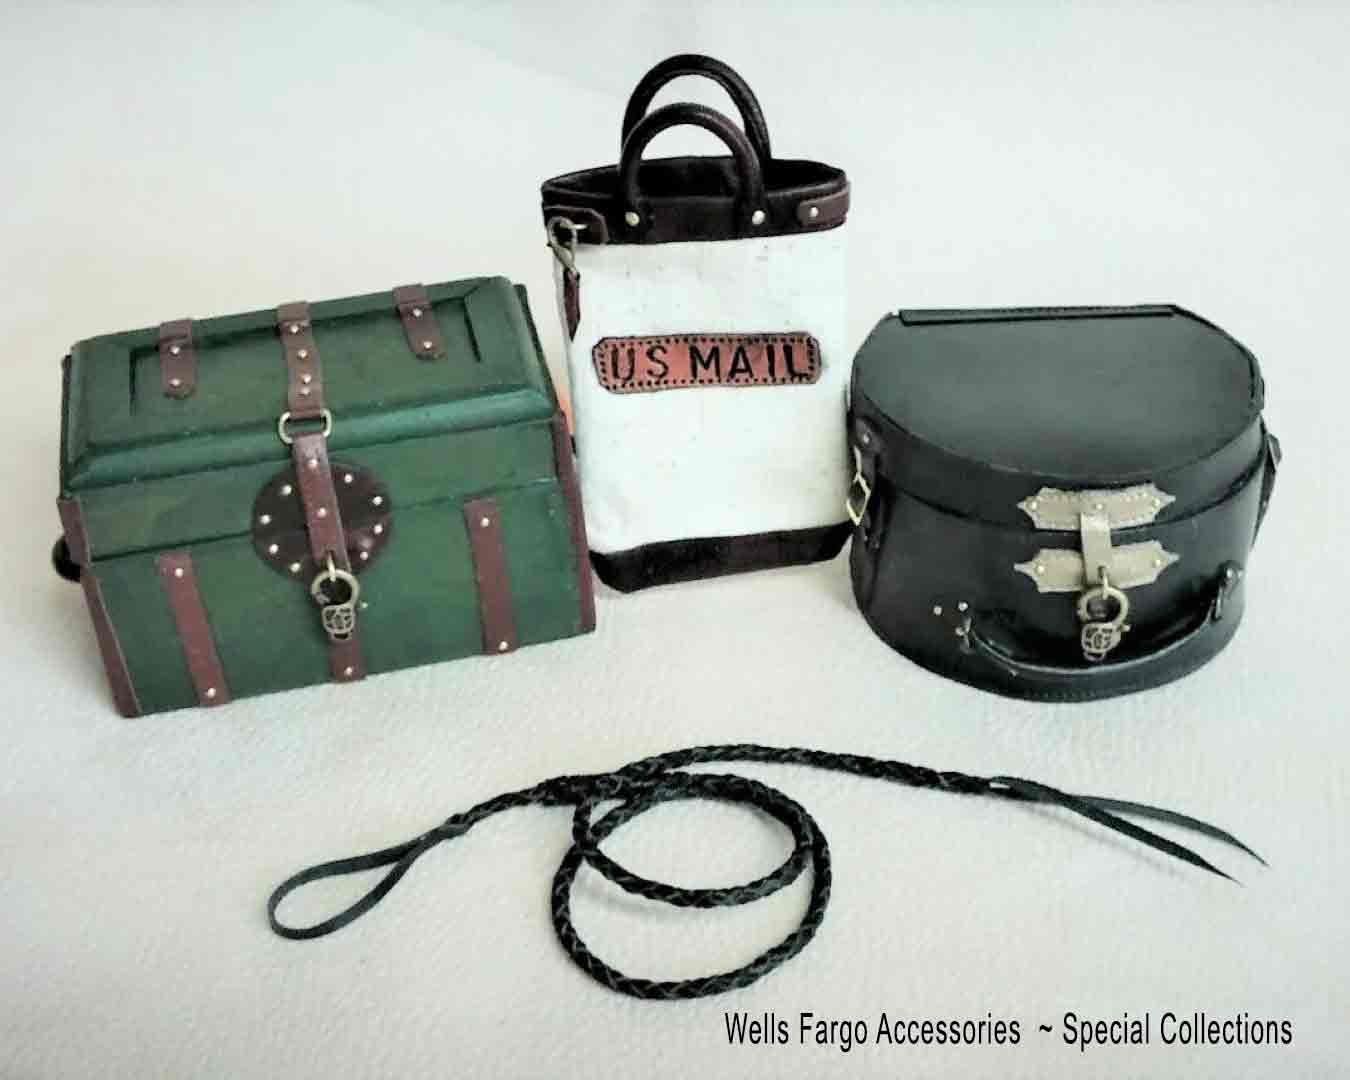 Wells Fargo Accessories  ~ Special Collections